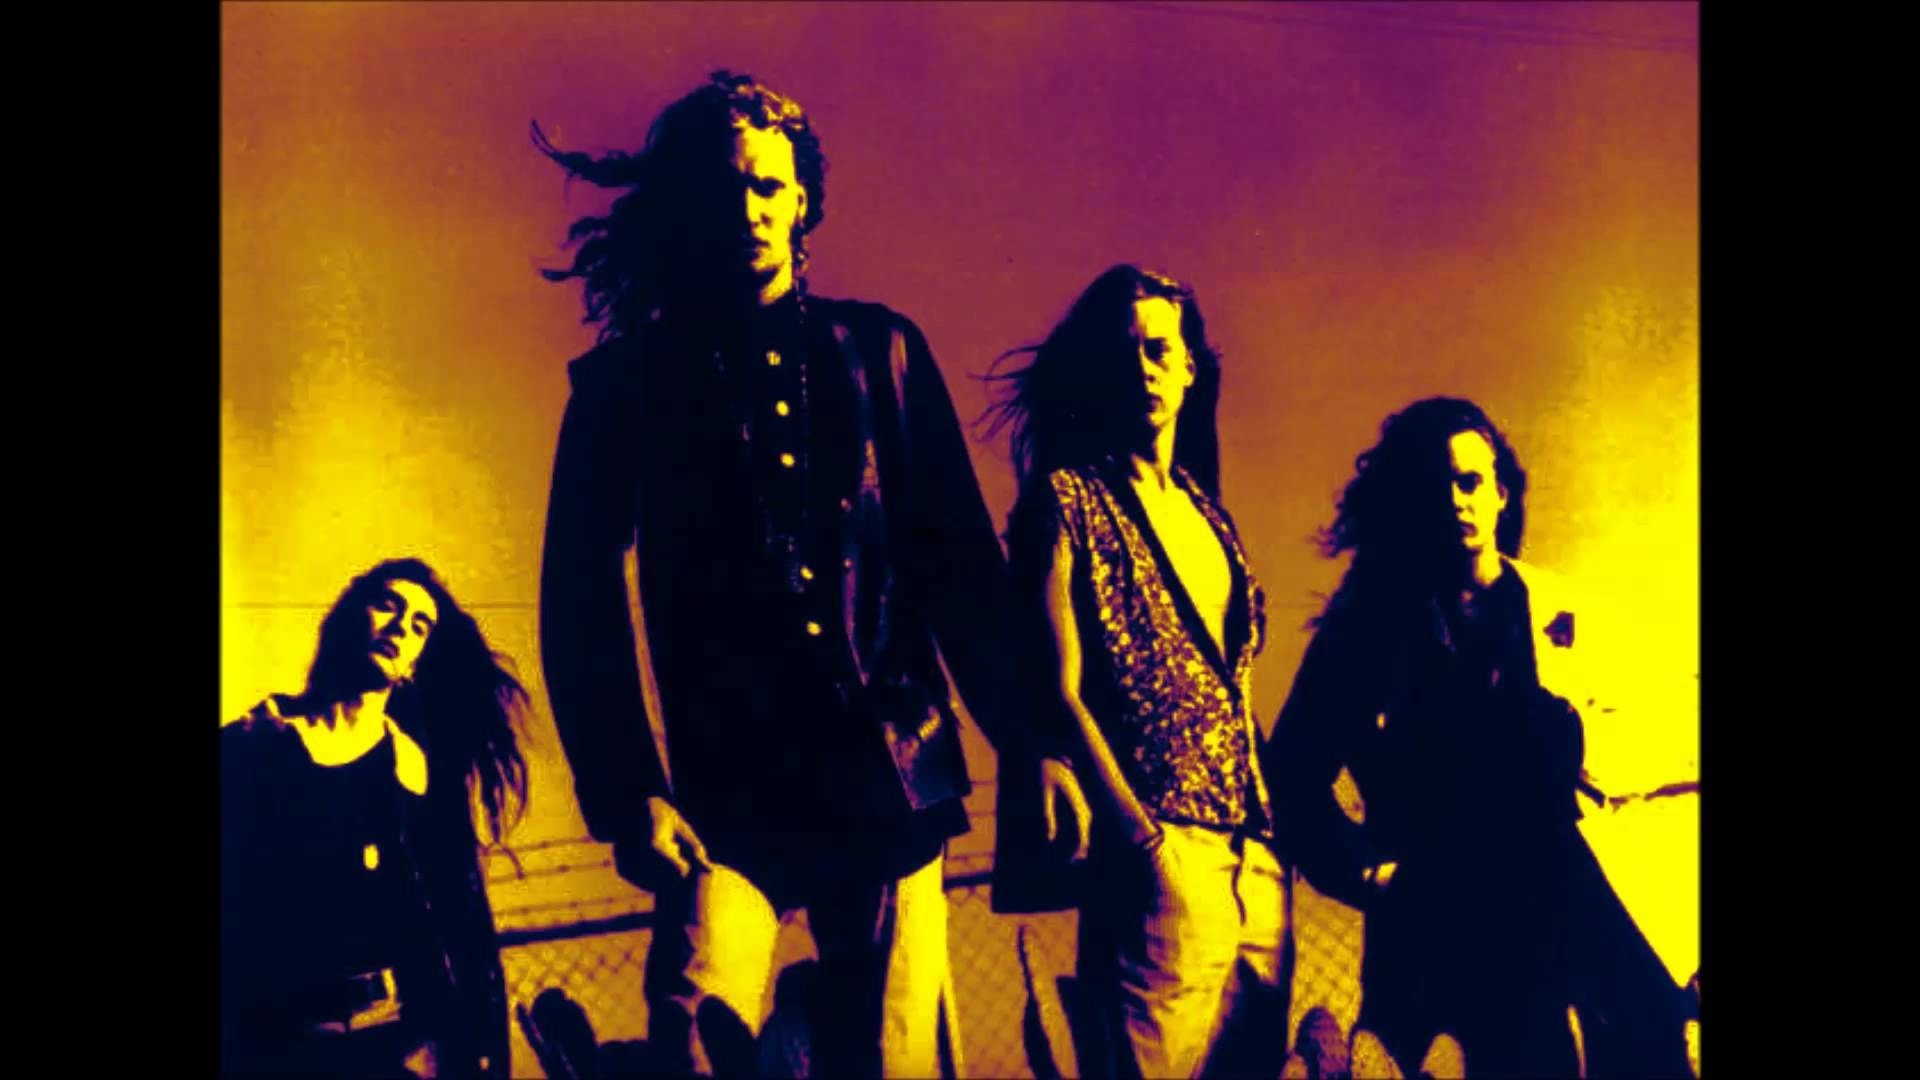 Alice in Chains – Dam That River (demo)